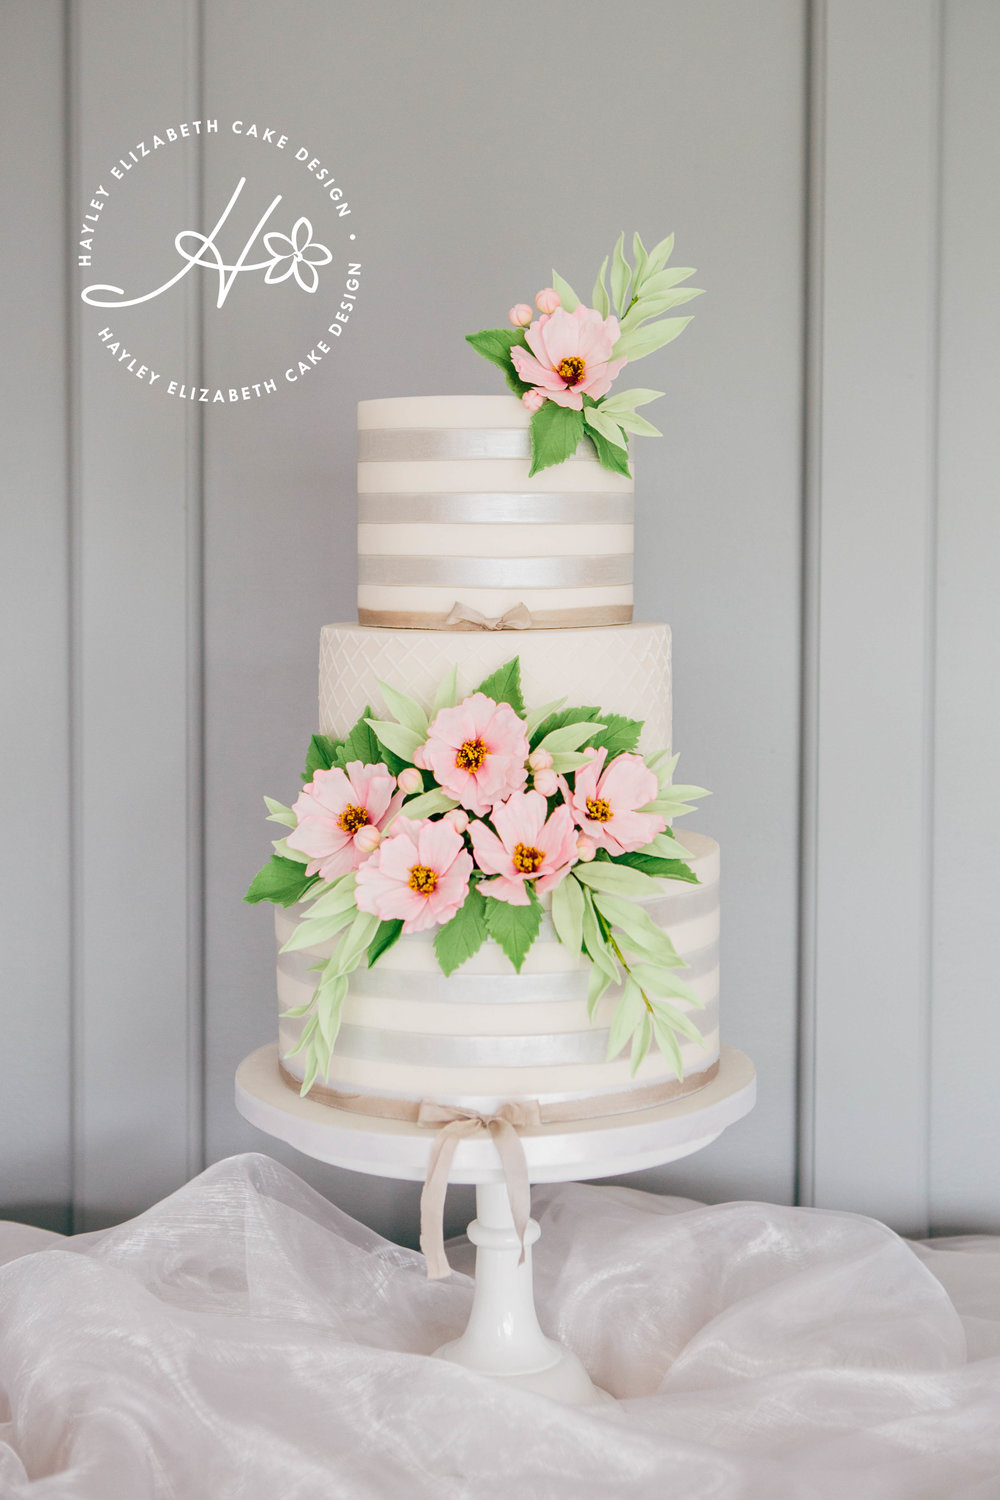 silver-shimmer-stripe-wedding-cake-with-pink-cosmos-and-foliage.jpg